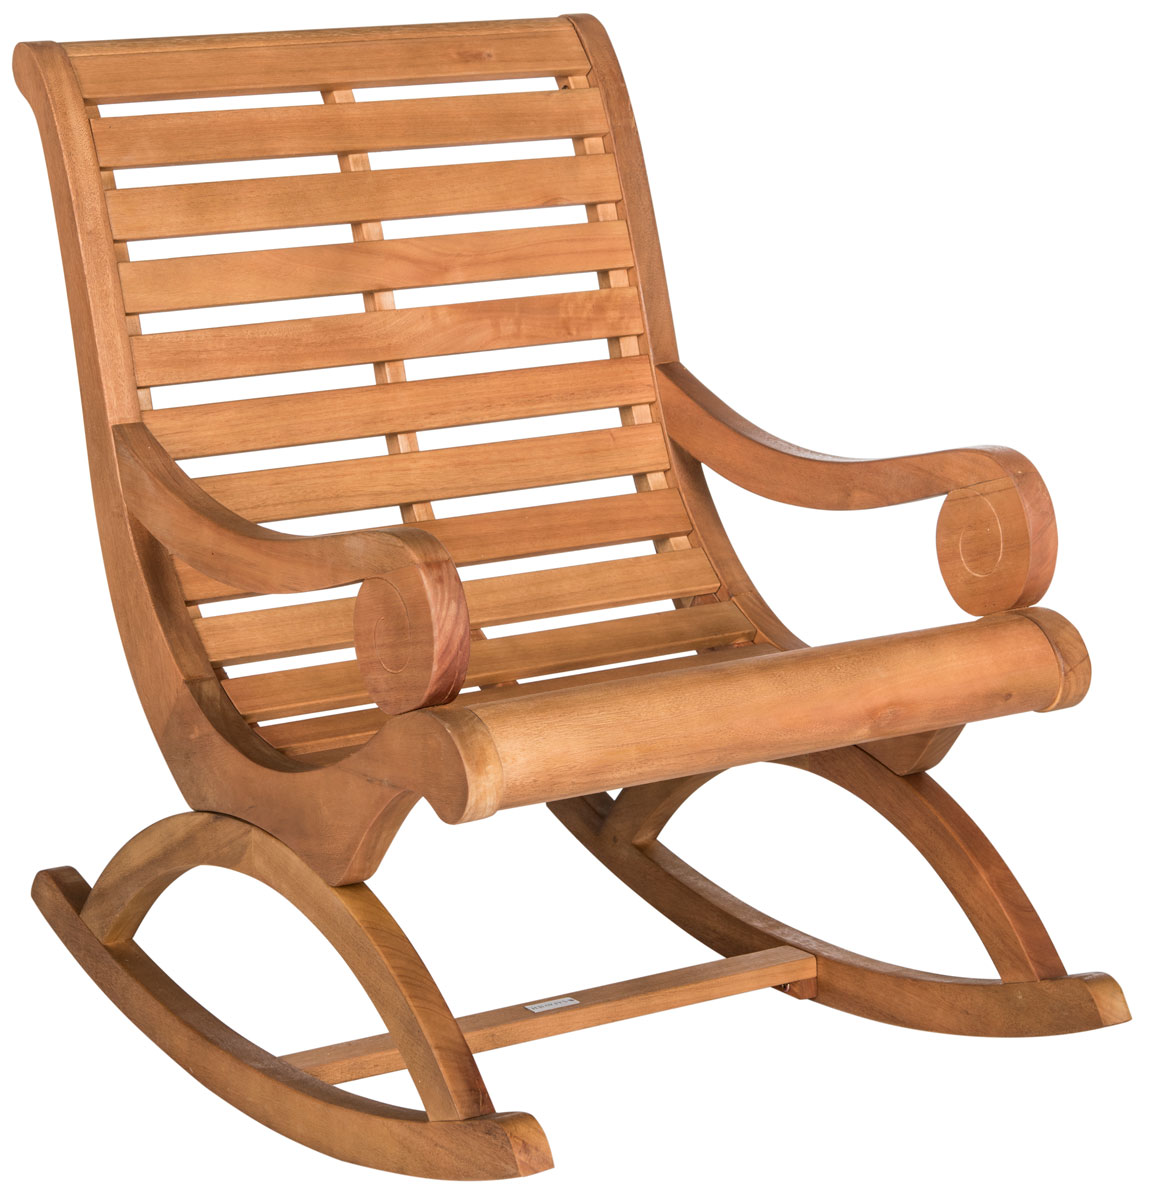 Best Place To Buy Rocking Chairs Porch Rocking Chair Outdoor Furniture Safavieh